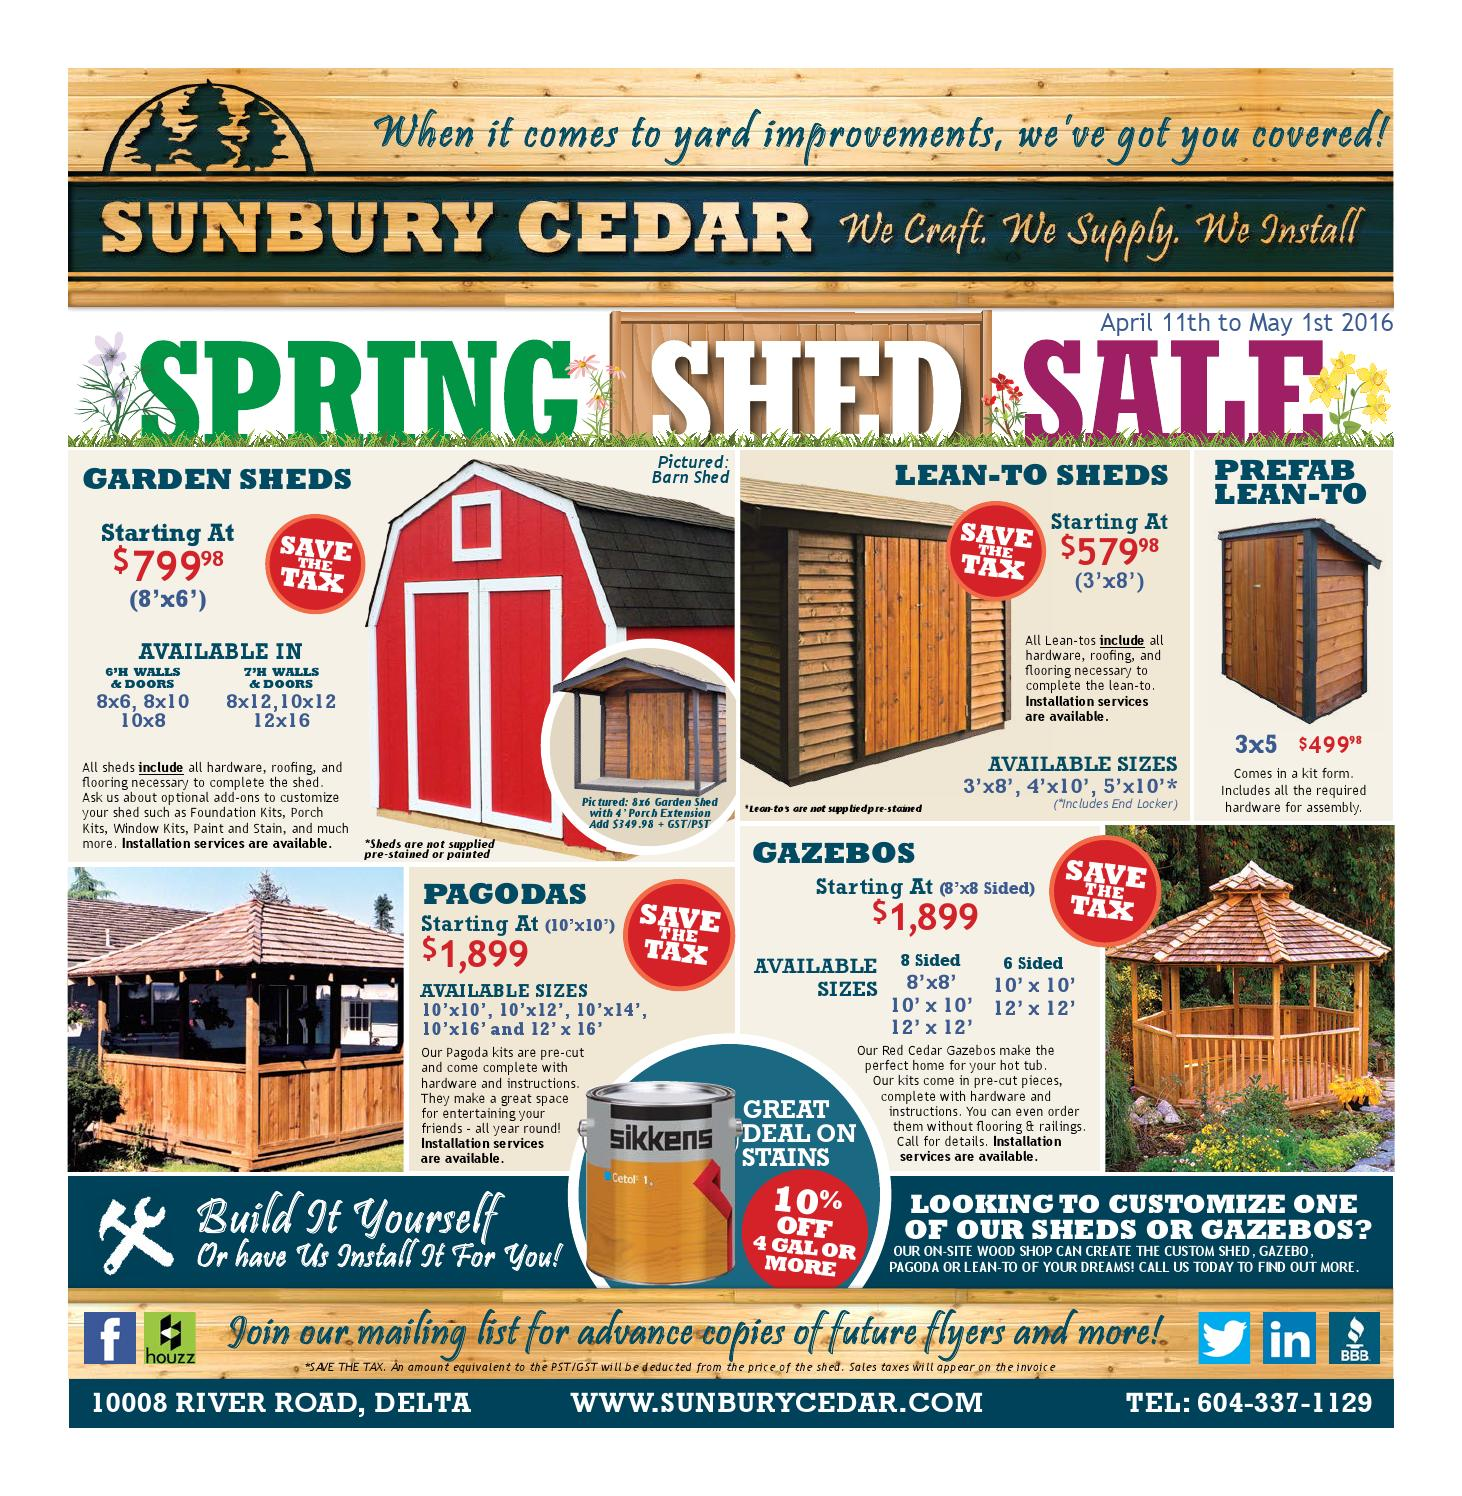 Sunbury Cedar Spring Shed Sale - APR 11-MAY 1 2016 by